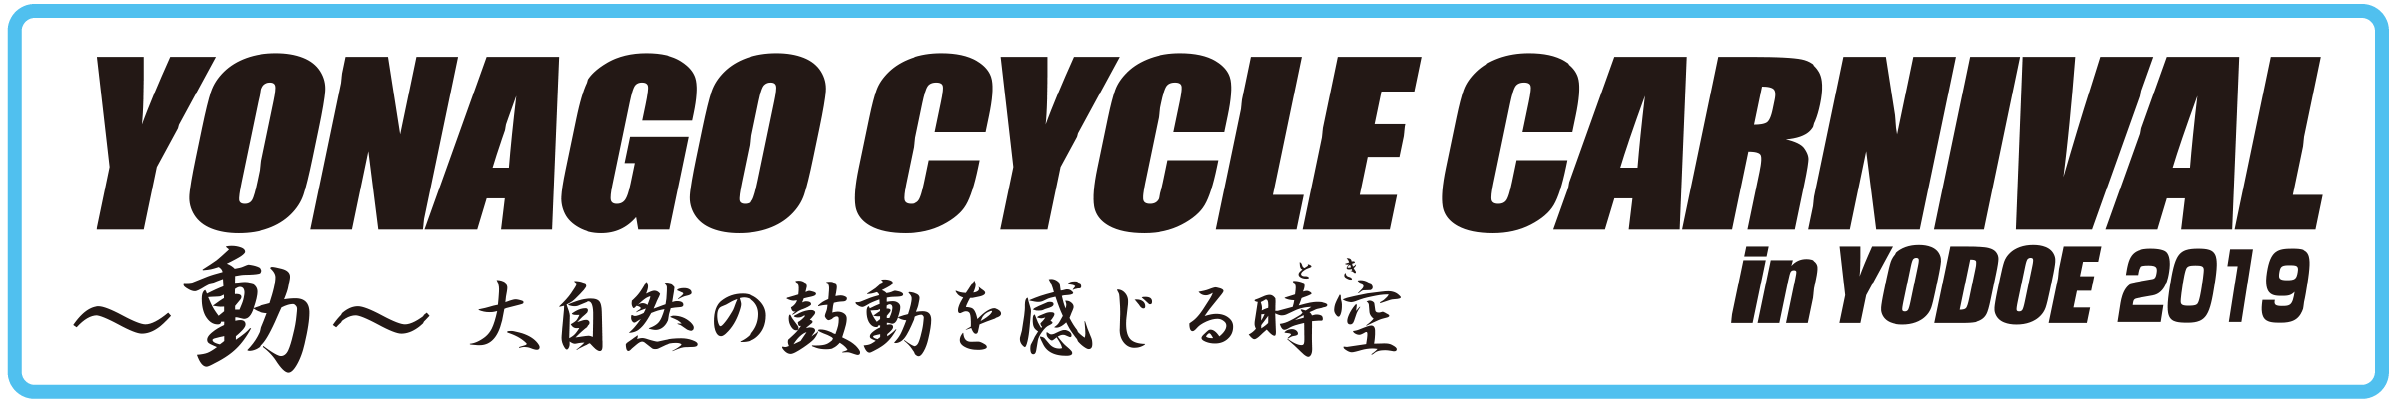 《イベント》YONAGO CYCLE CARNIVAL in YODOE 2019